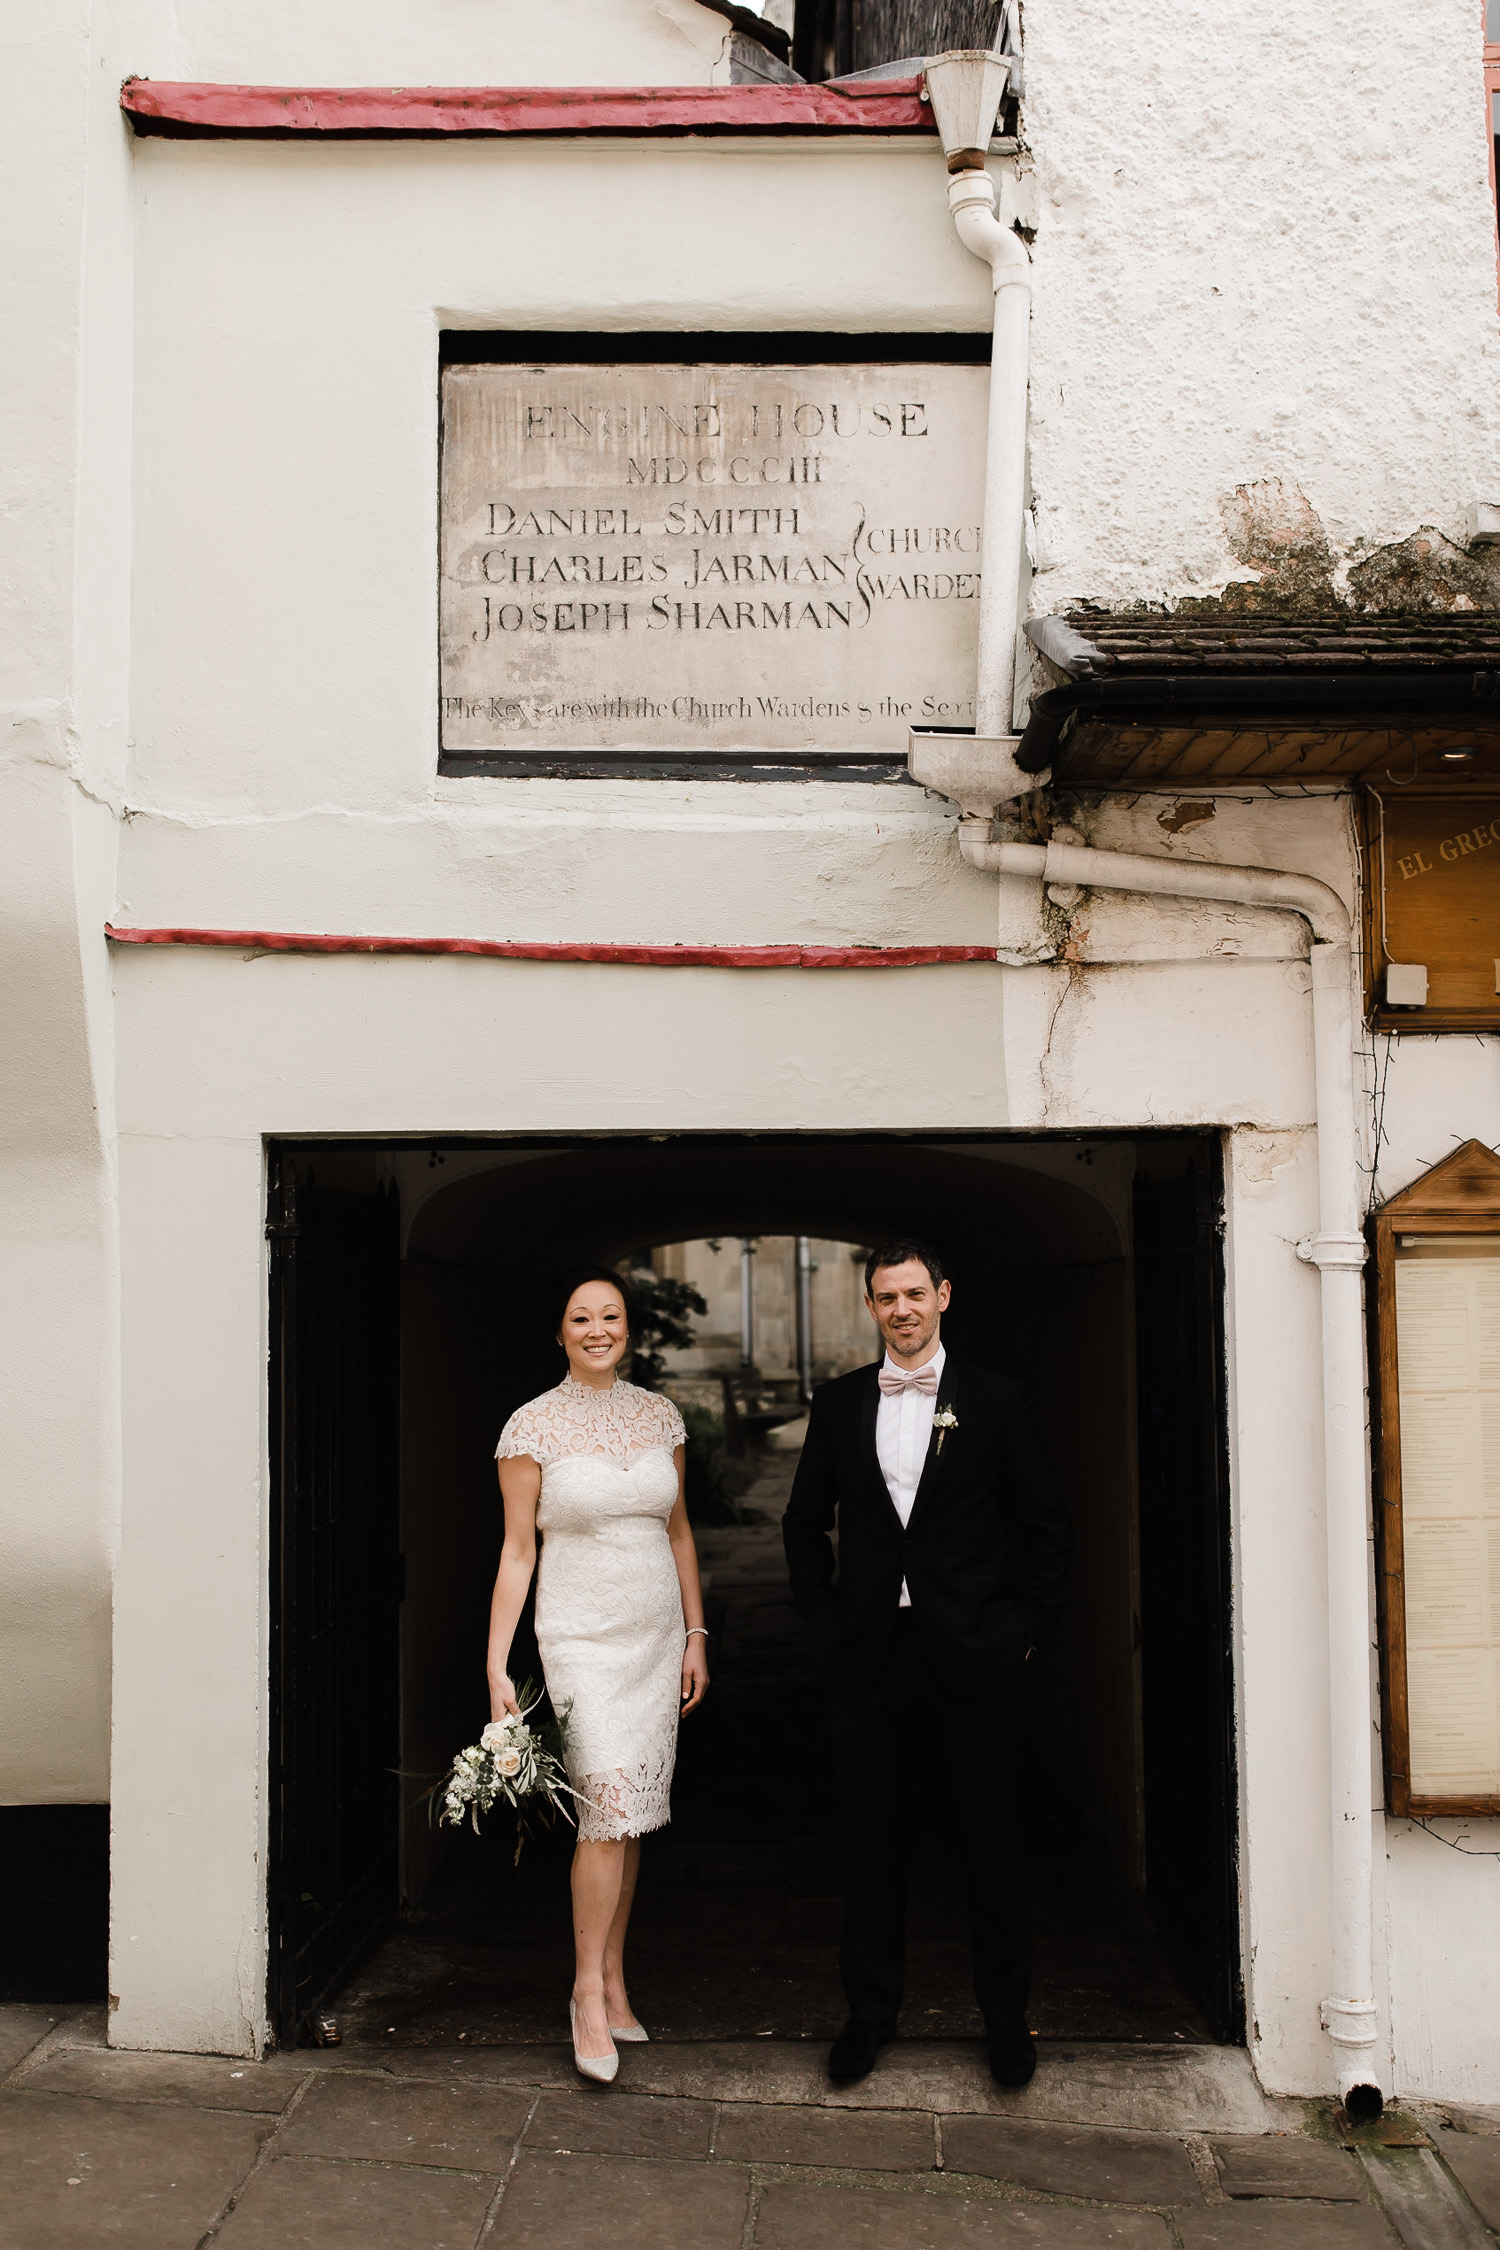 Windsor_Guildhall_wedding_ceremony_Castle_Hotel_060.jpg